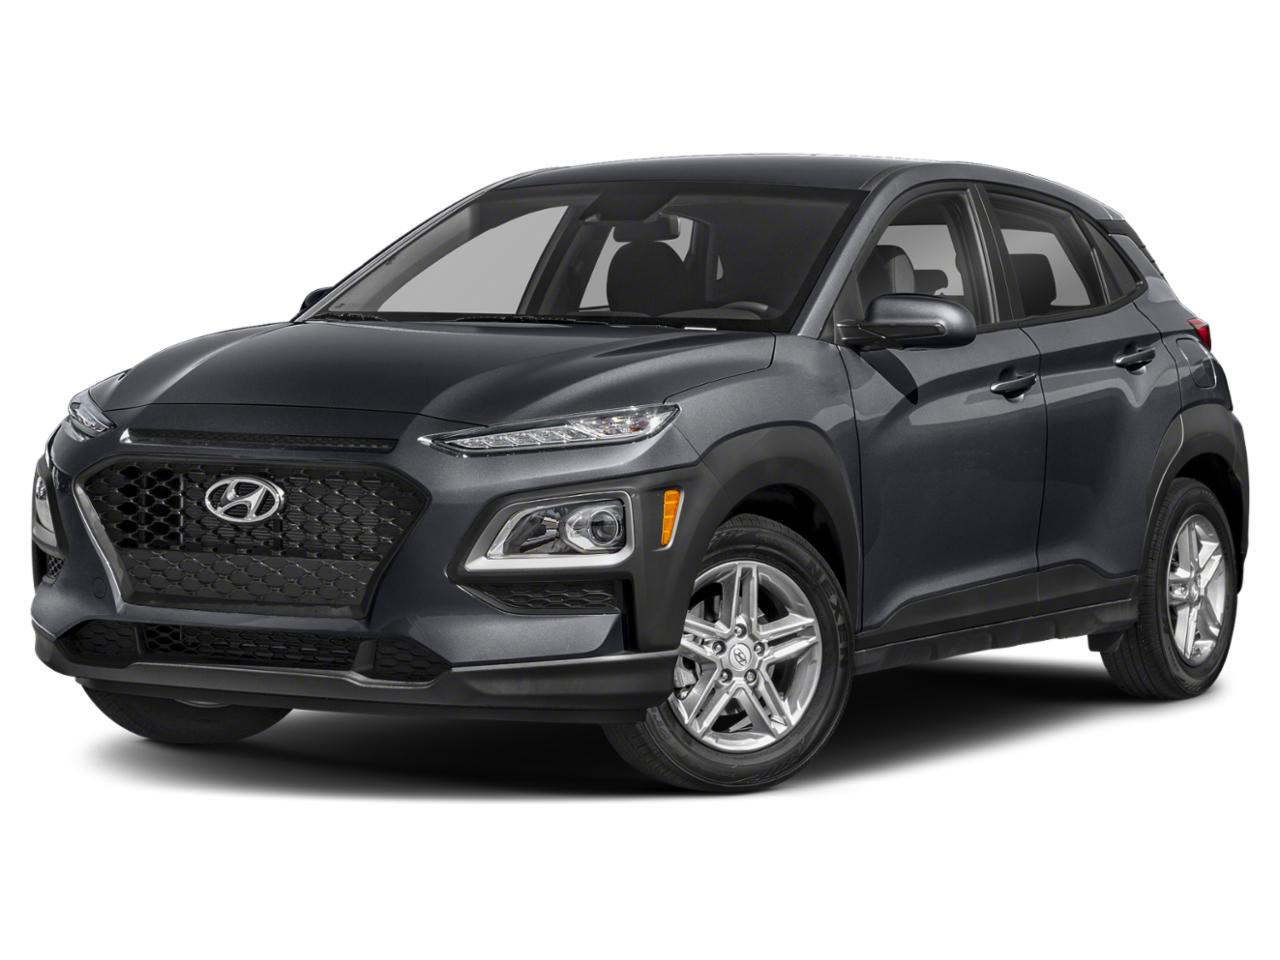 2020 Hyundai Kona Vehicle Photo in Odessa, TX 79762